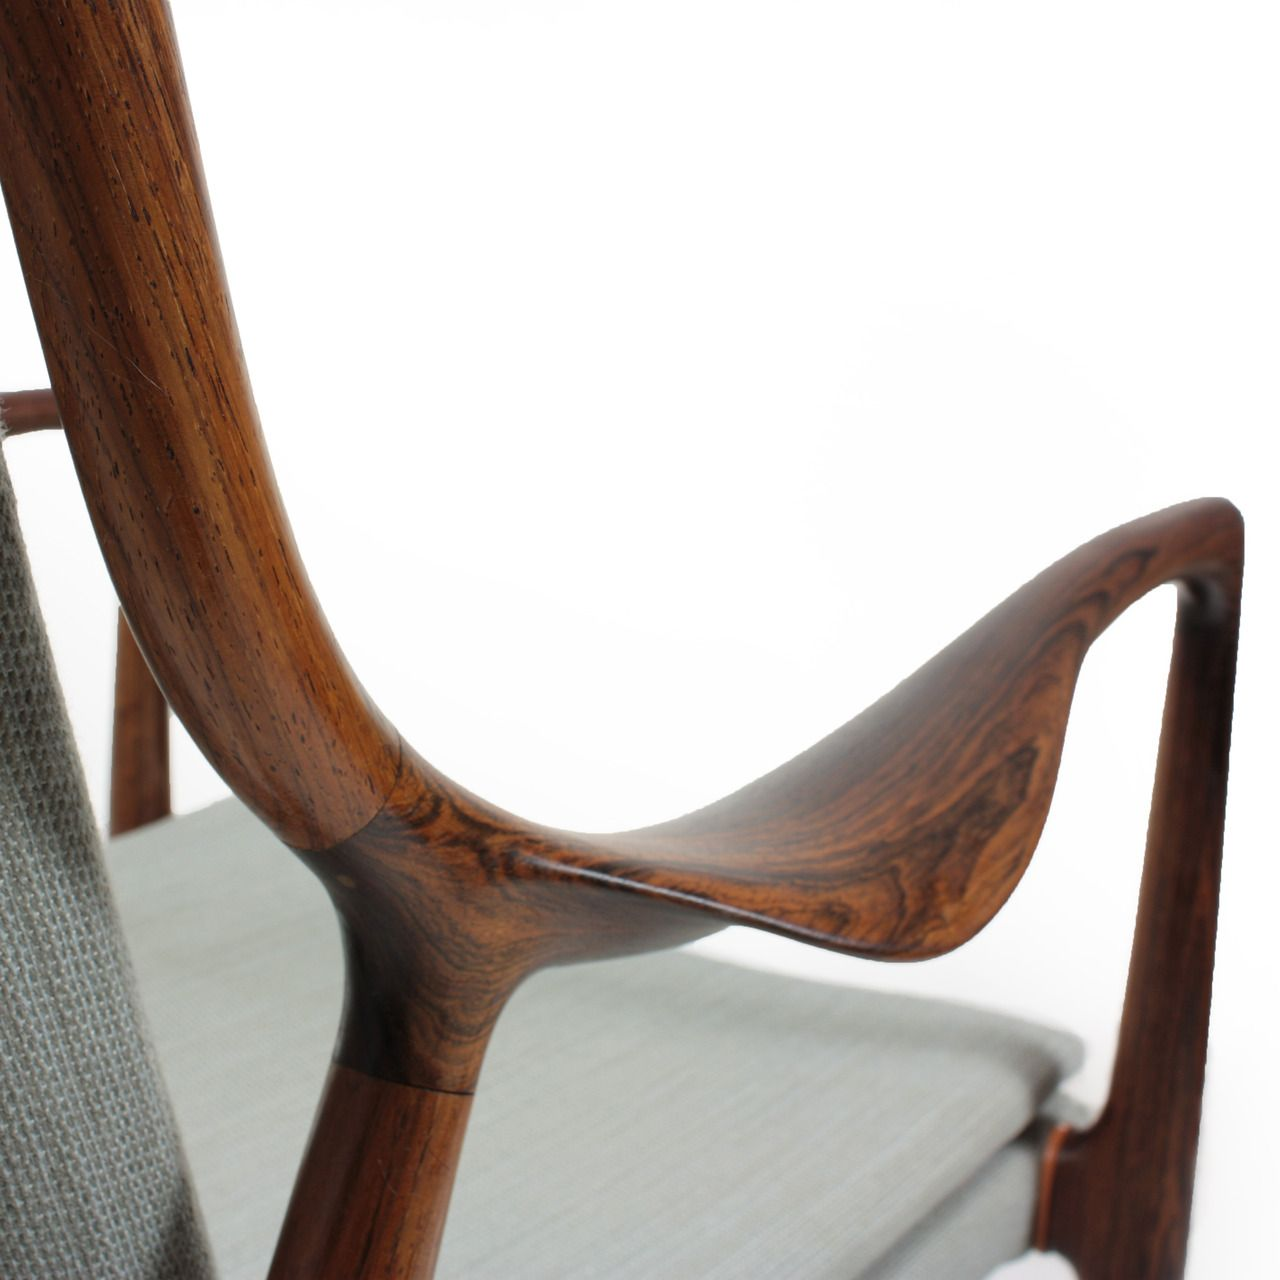 Detail Of Beautiful Joinery On Mid Century Modern Lounge Chair Designed By Danish Furniture Design Modern Lounge Chair Design Mid Century Modern Lounge Chairs